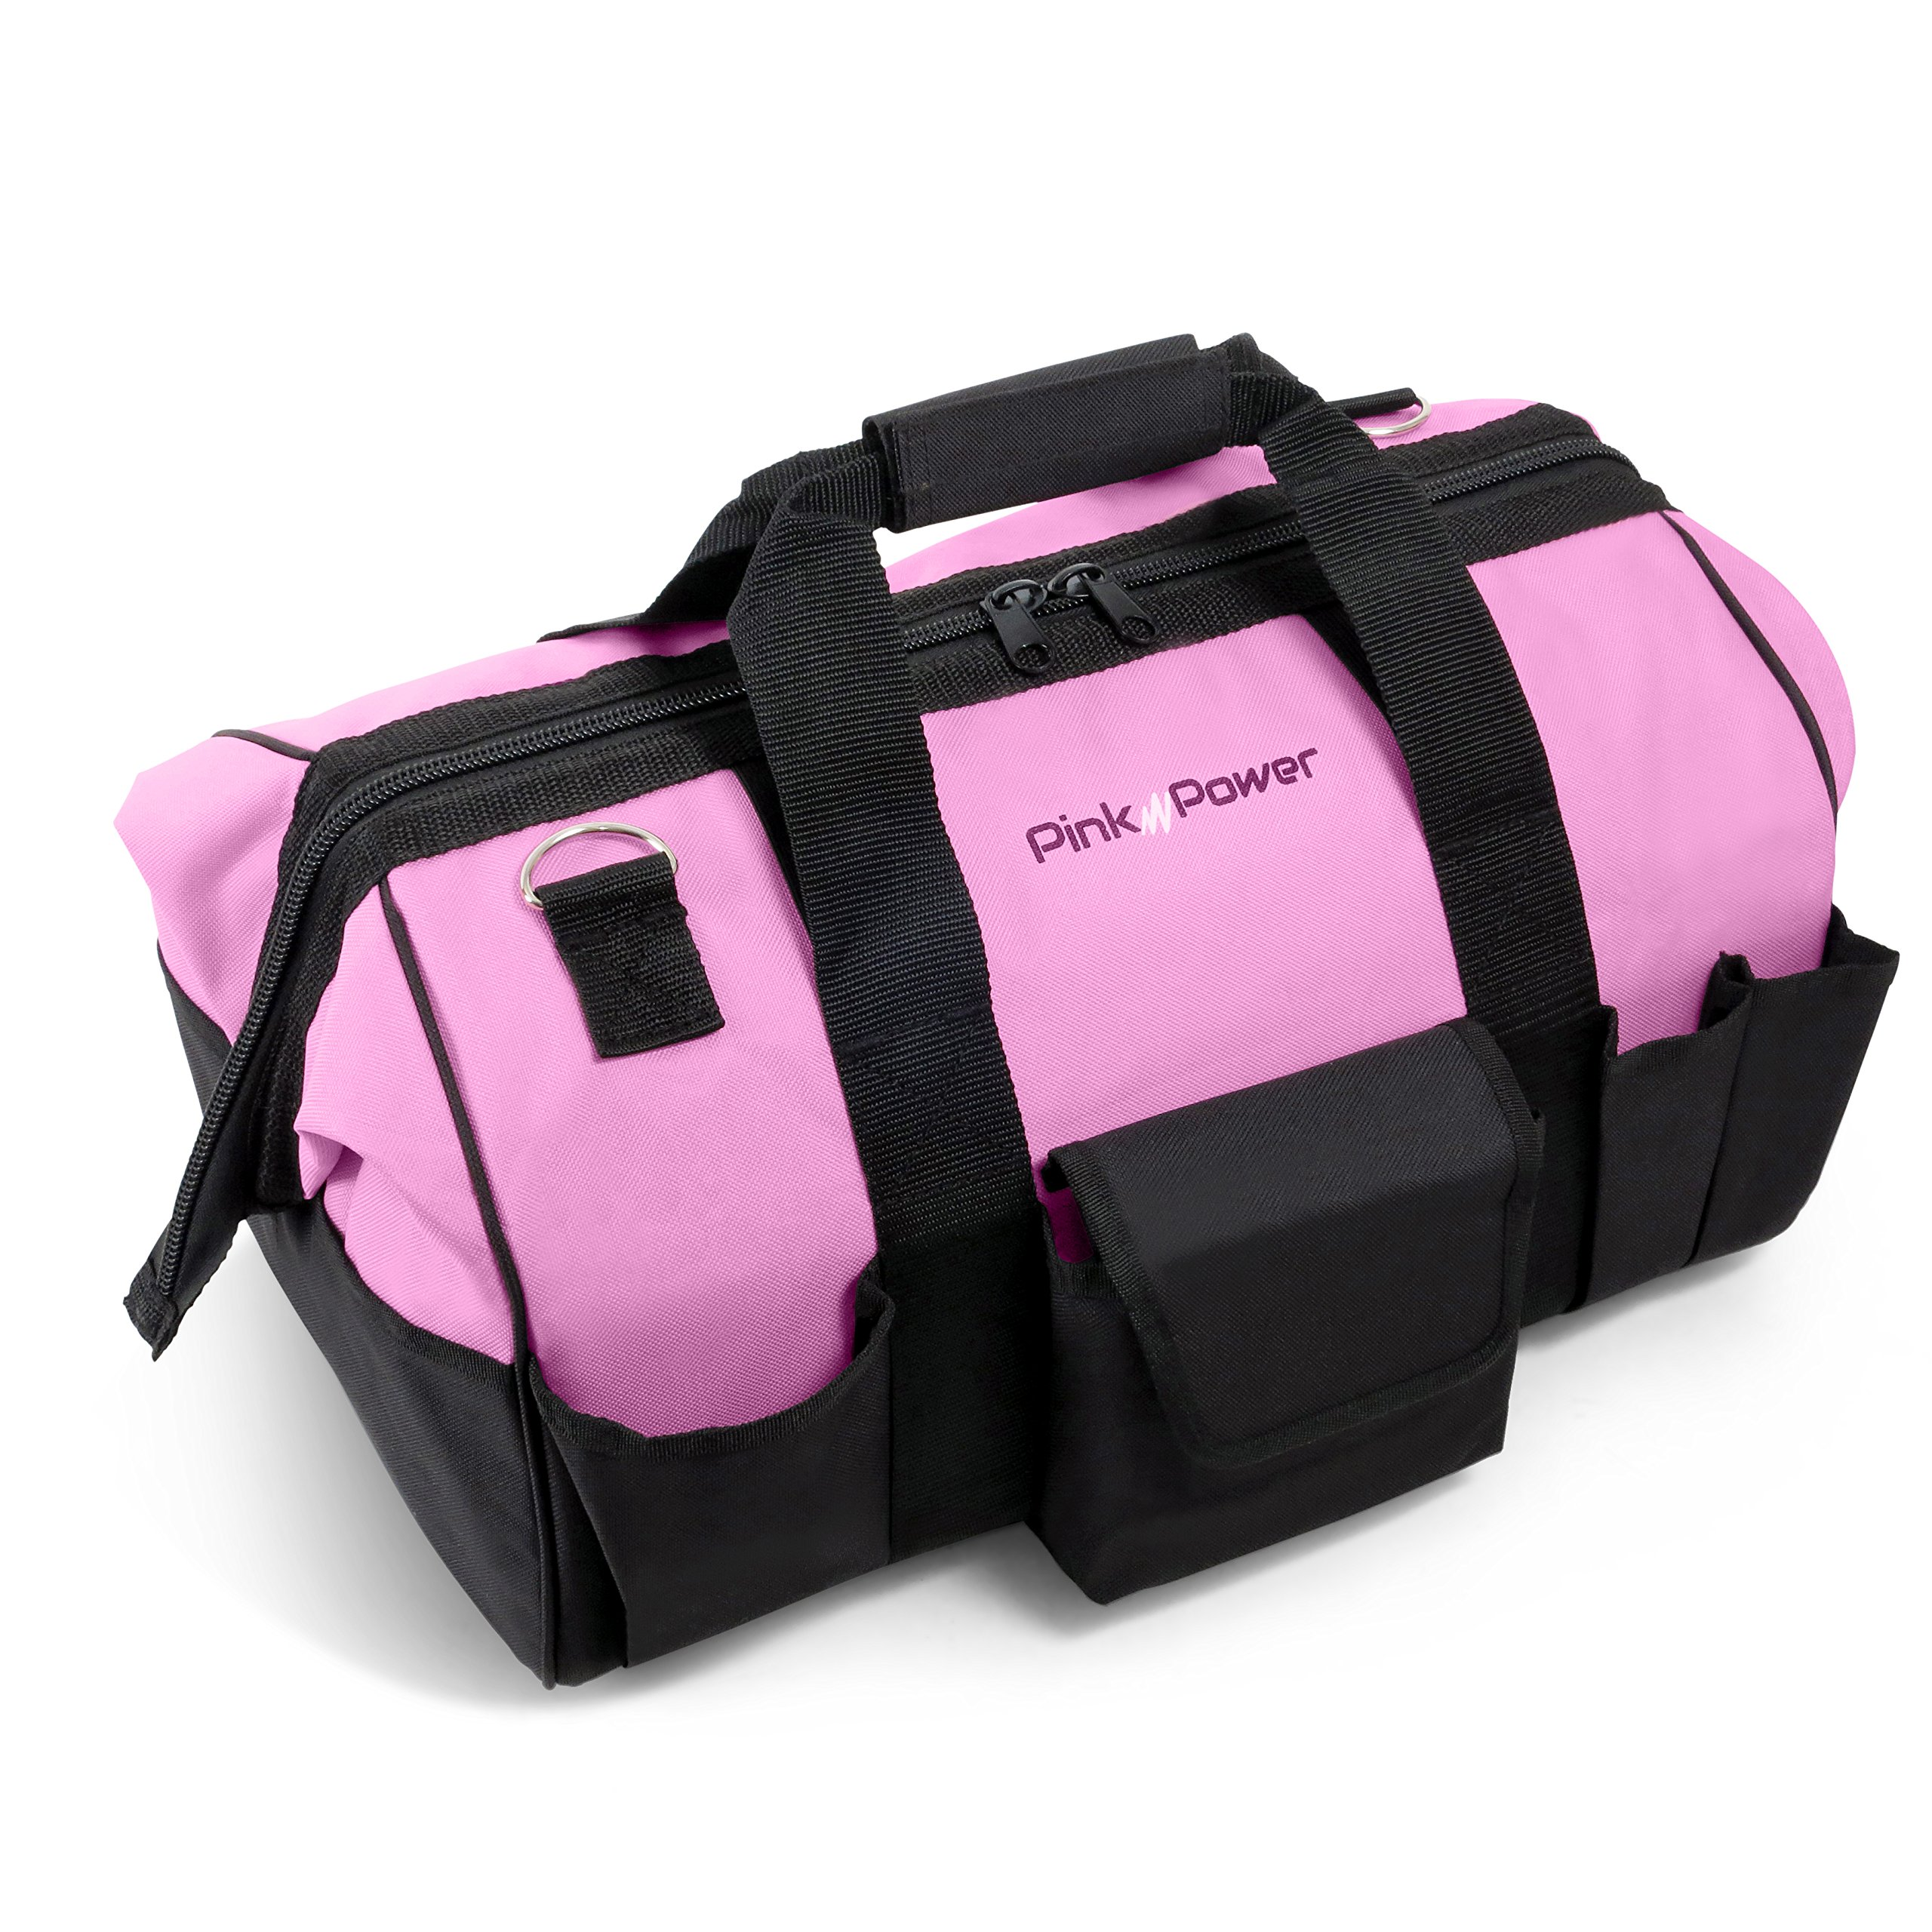 "Pink Power 20"" Tool Bag for Women with 28 Storage Pockets and Shoulder Strap"